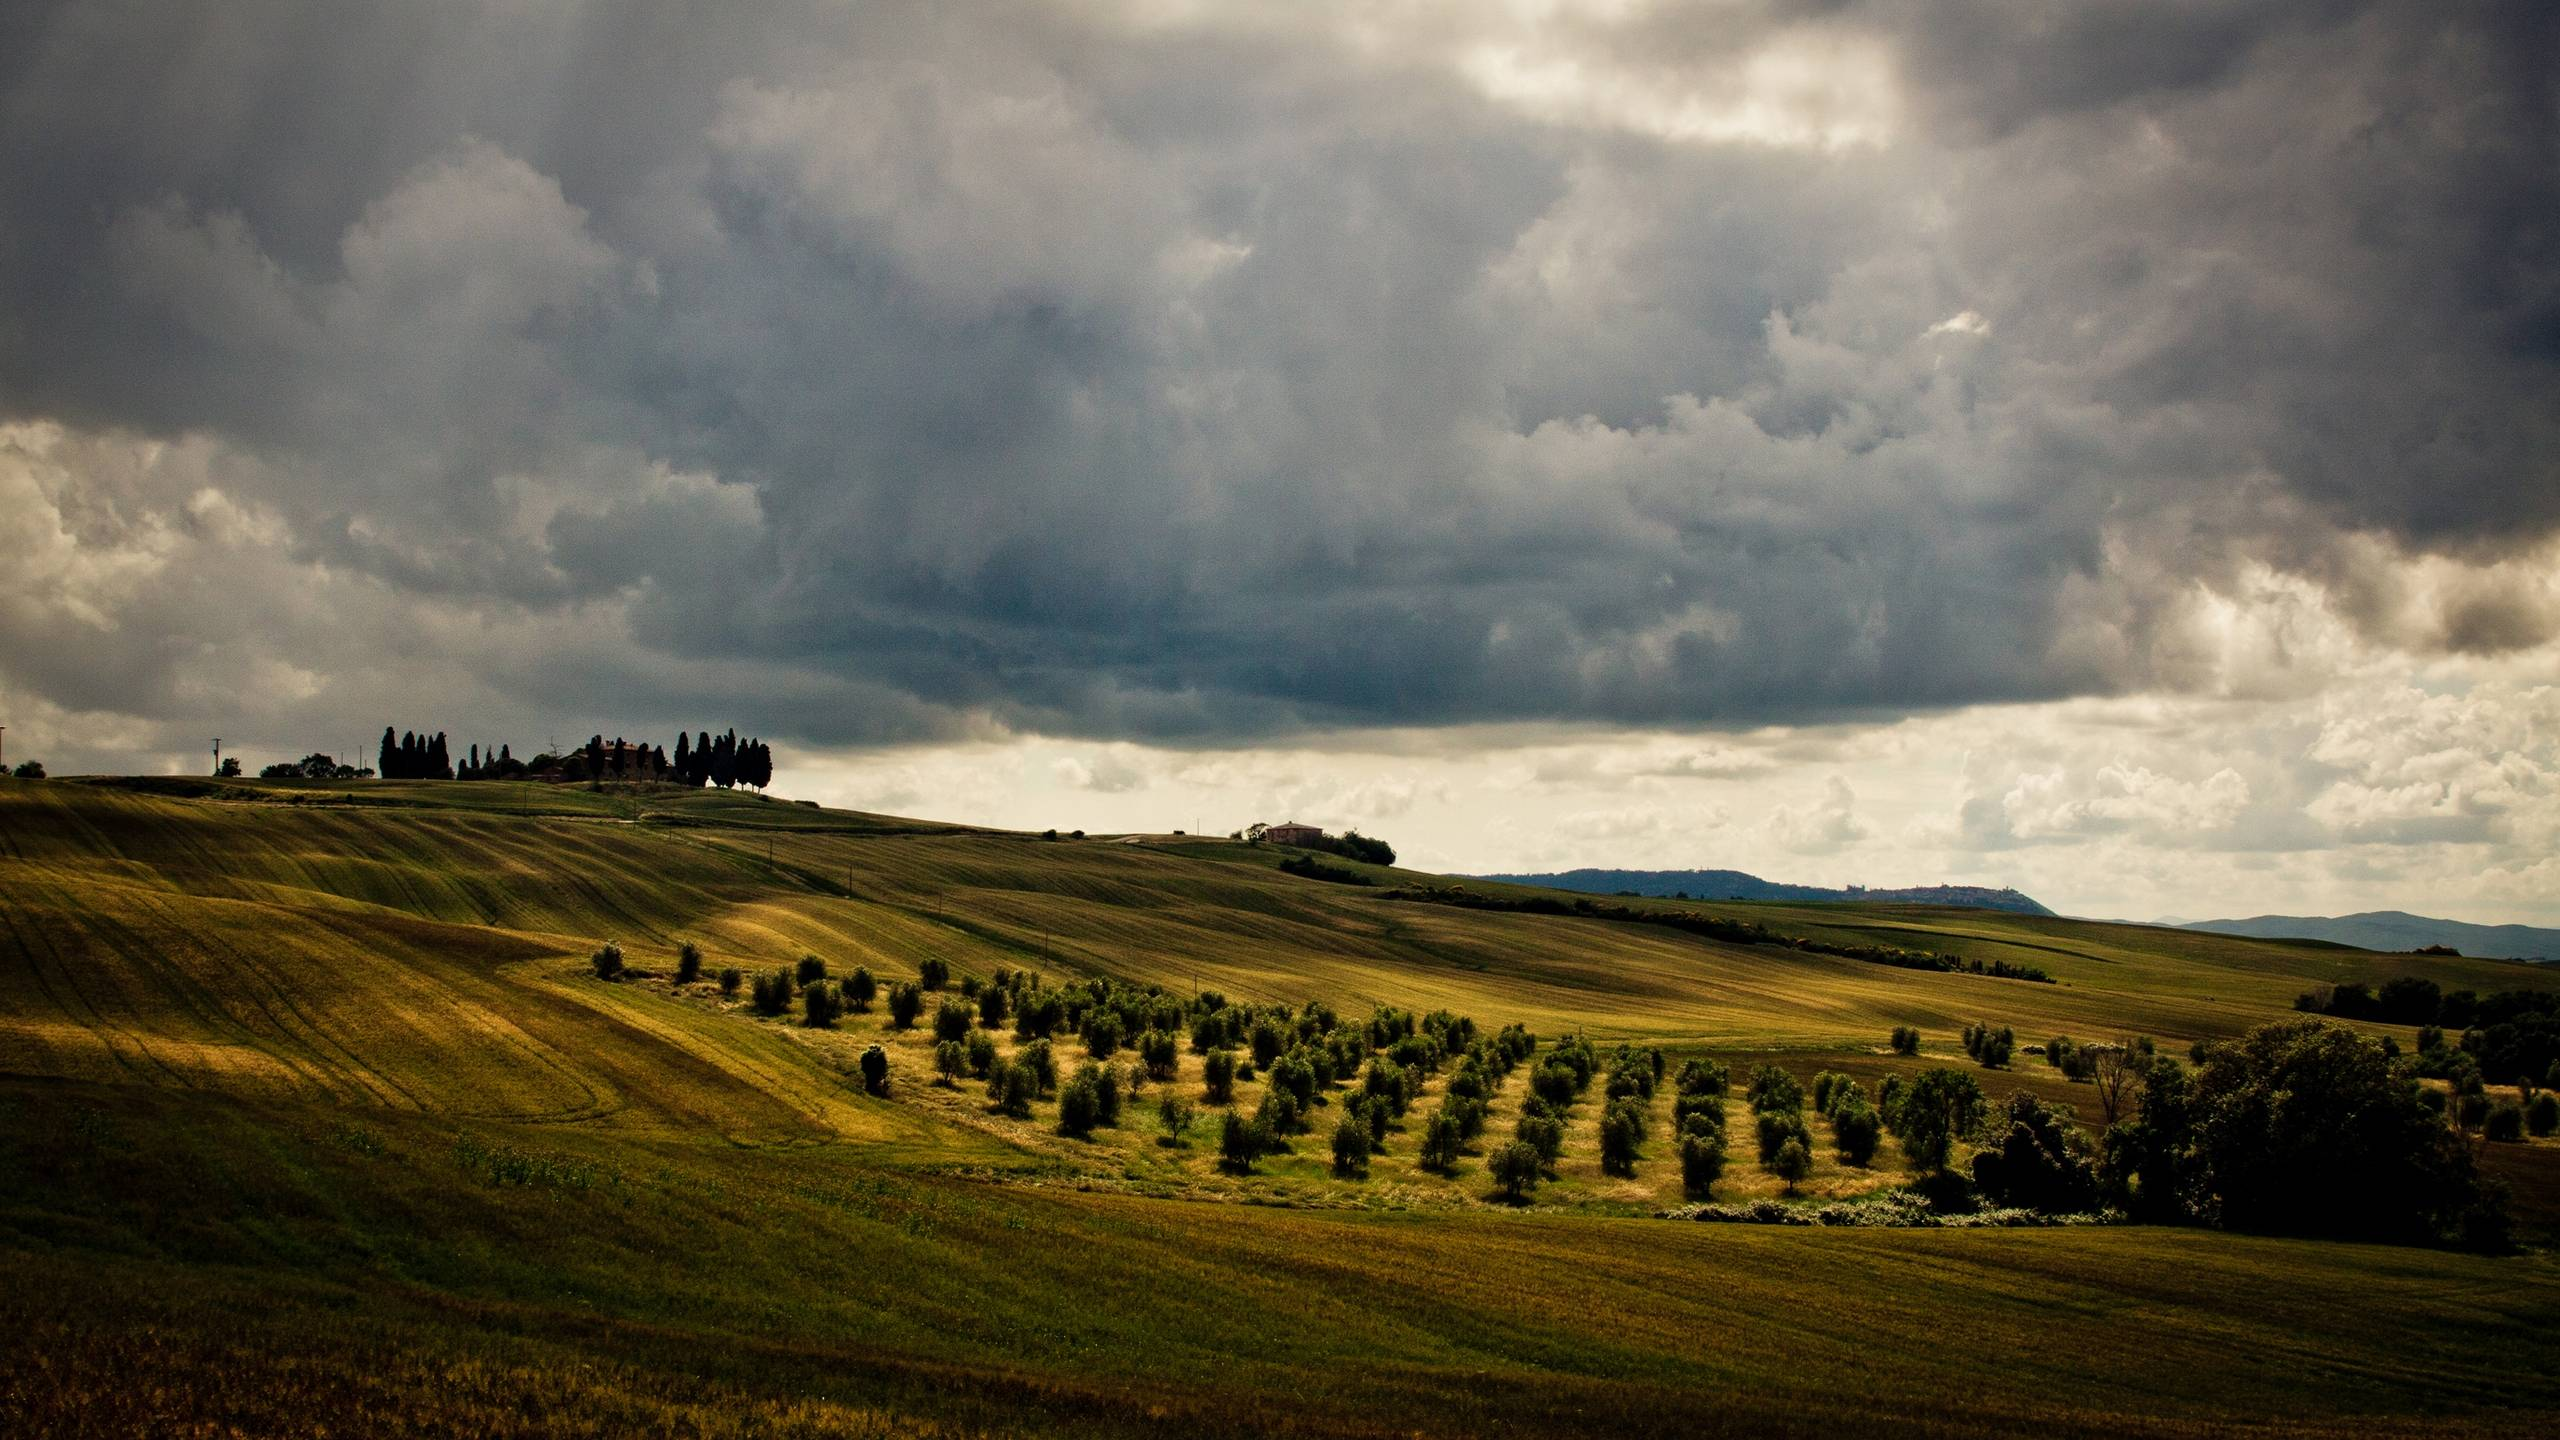 Tuscany wallpaper - 1250191